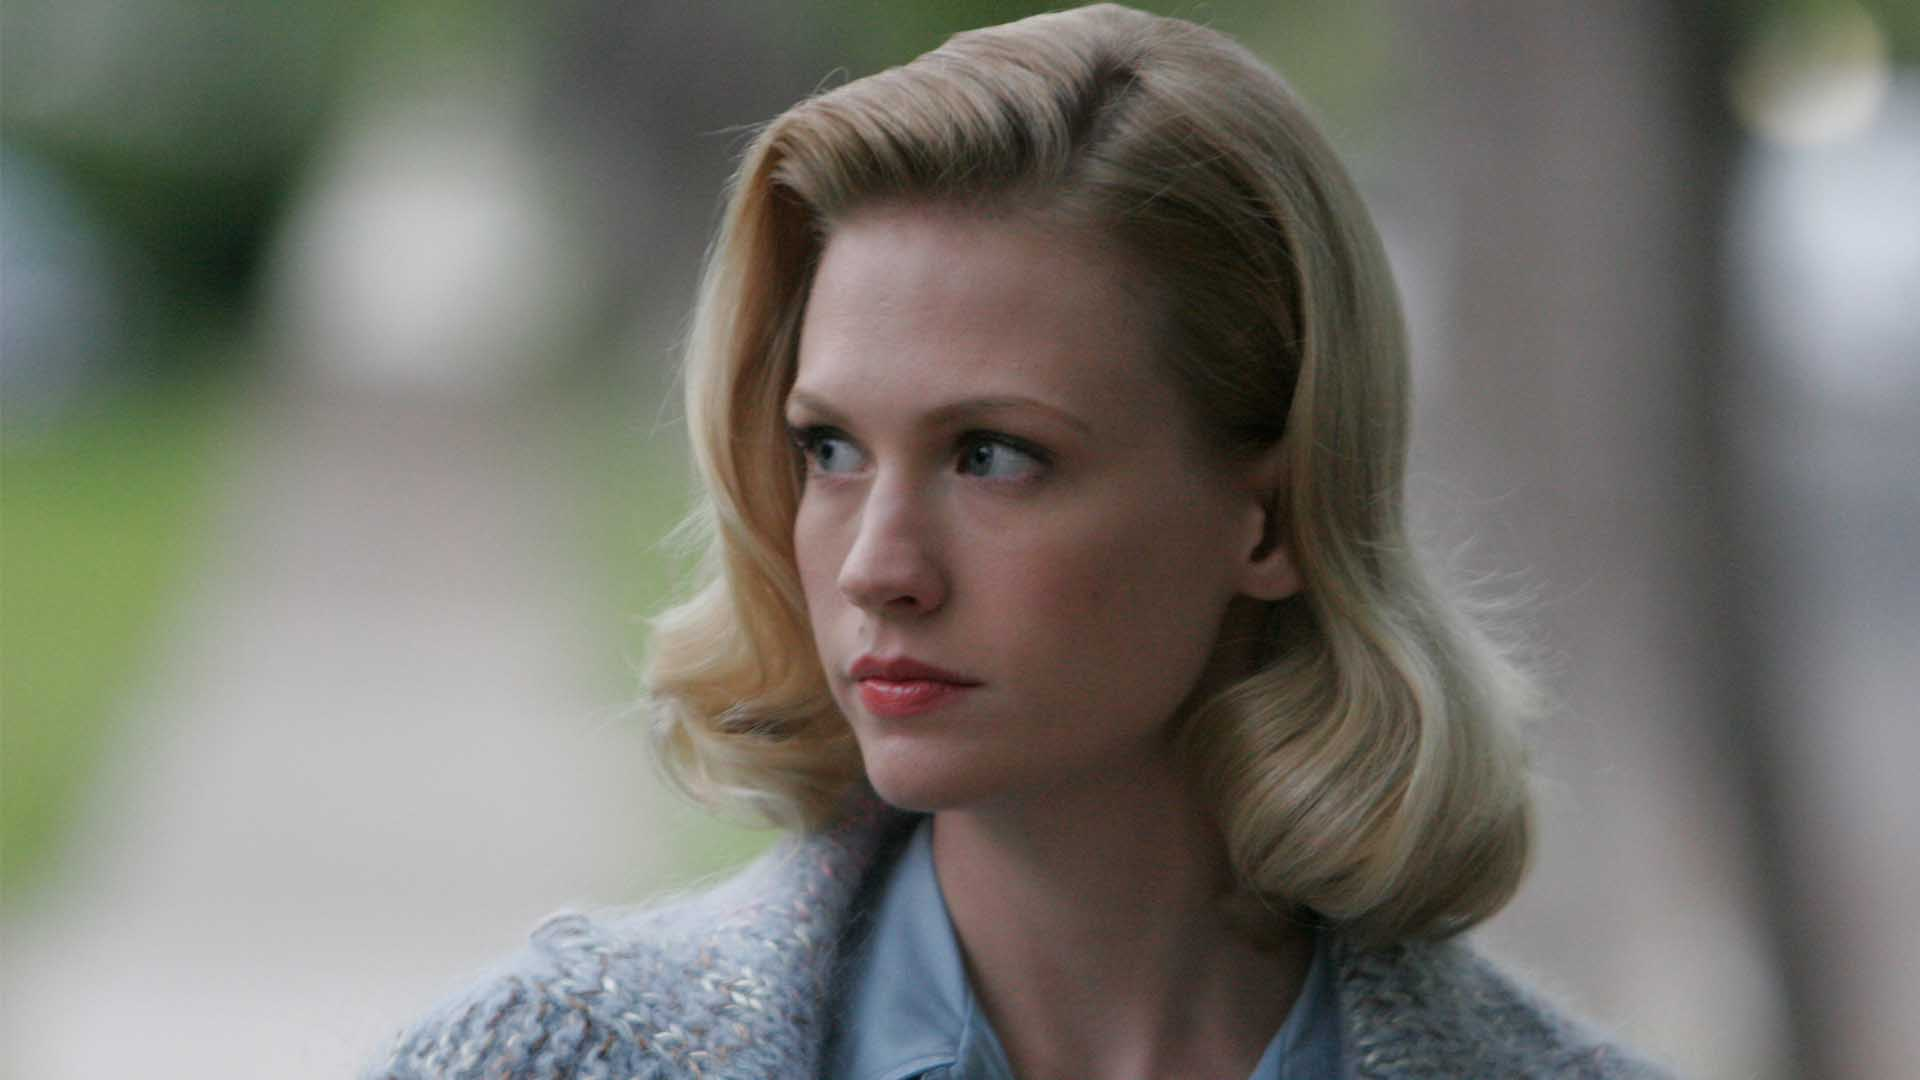 Women Hairstyles: Women's Hairstyles: Inside Mad Men